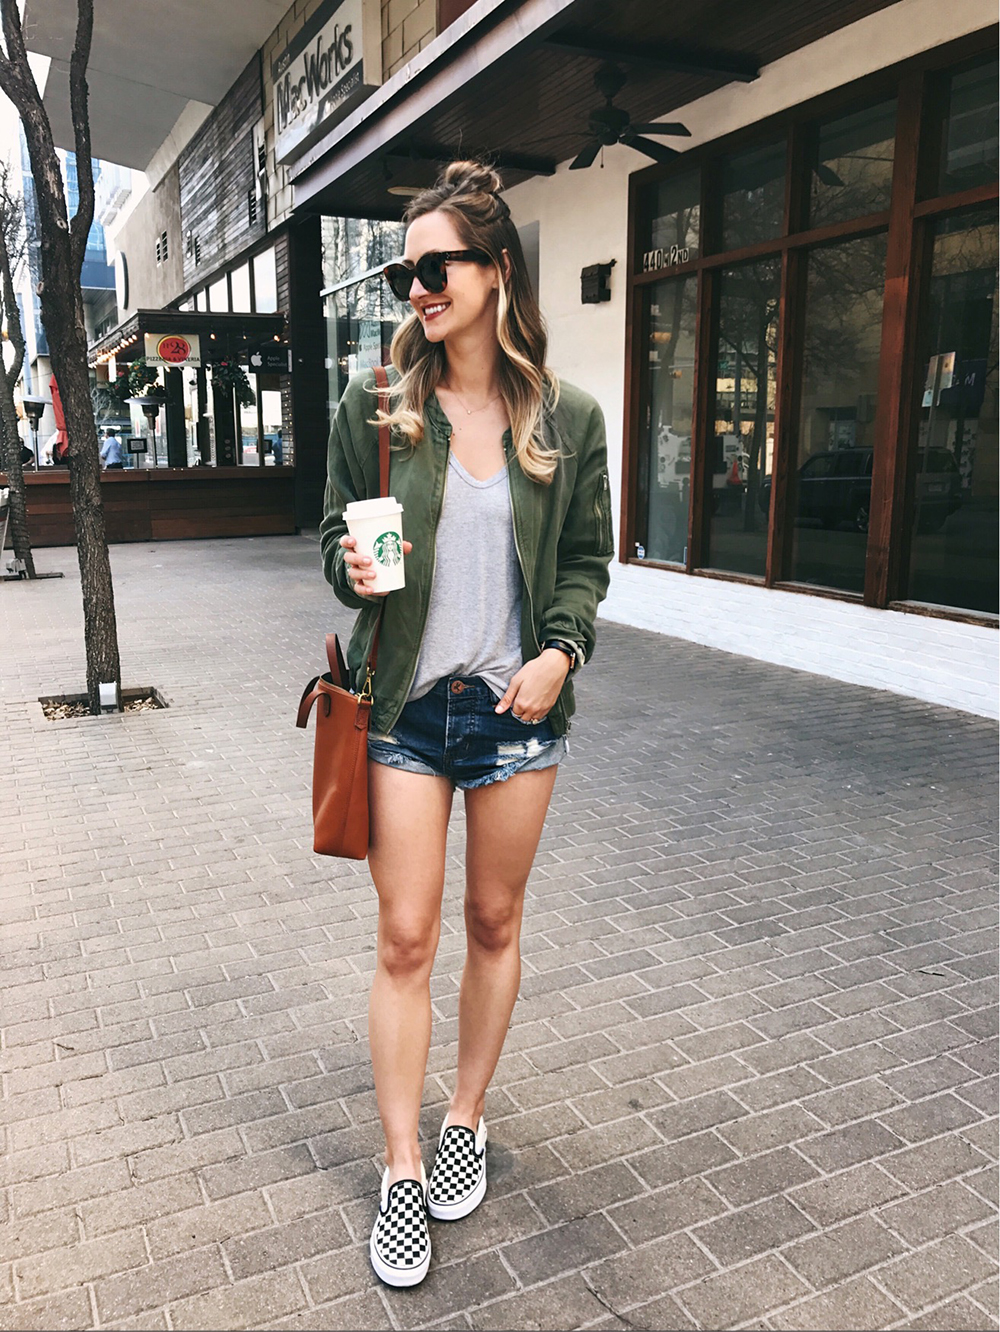 livvyland-blog-olivia-watson-instagram-roundup-livvylandblog-cozy-chic-boho-outfit-idea-one-teaspoon-bandit-shorts-vans-checkered-shoes